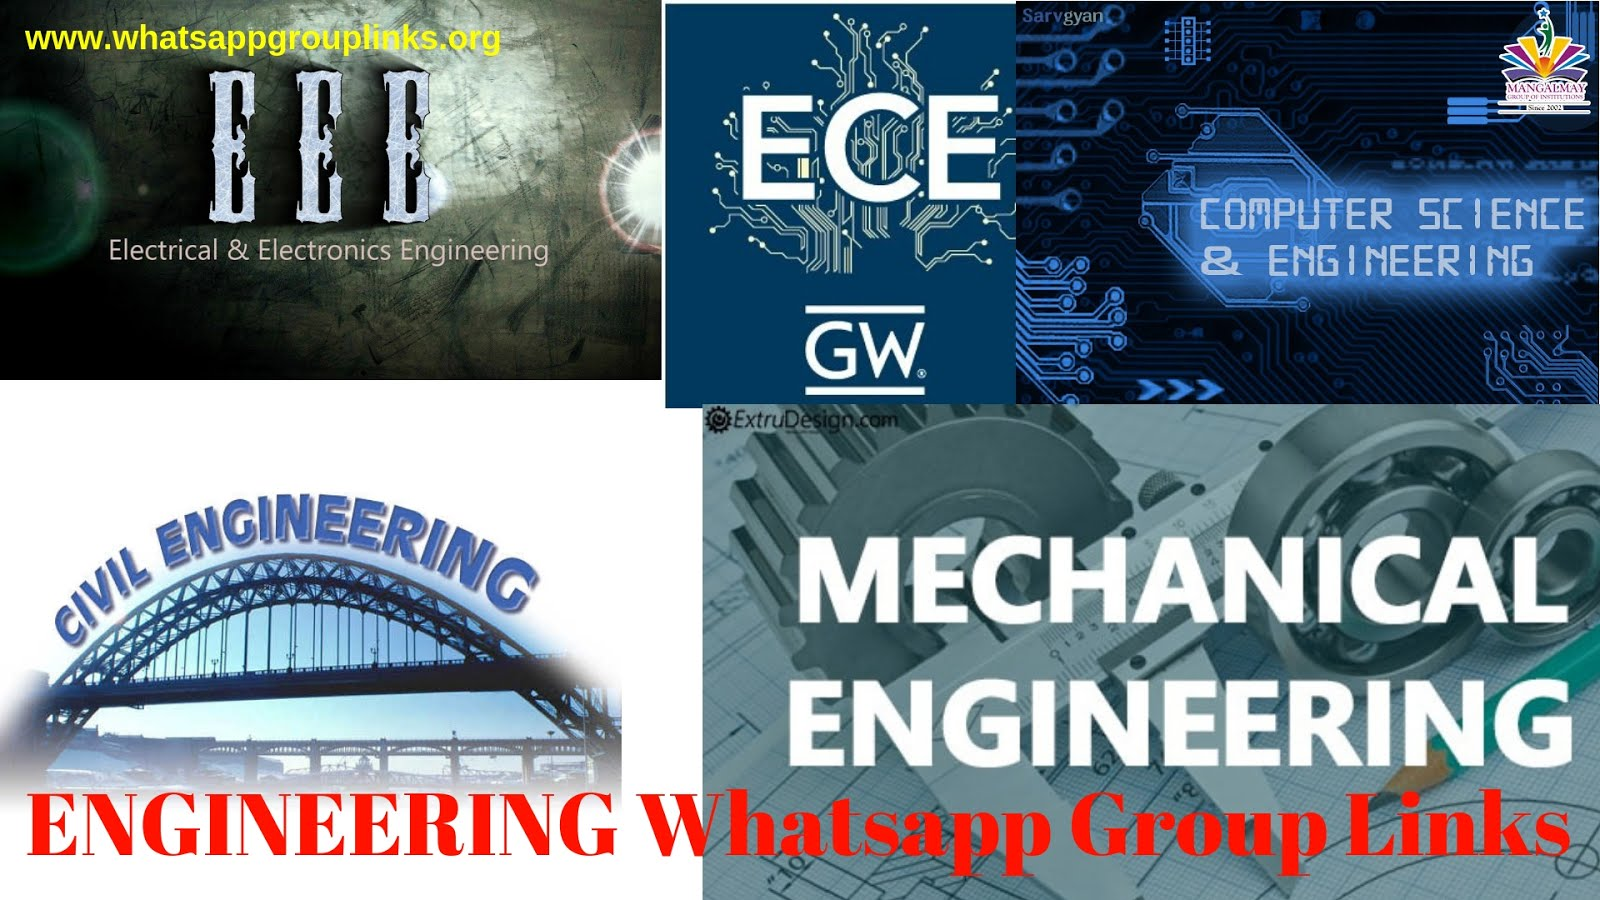 Join Engineering Whatsapp Group Links List - Whatsapp Group Links